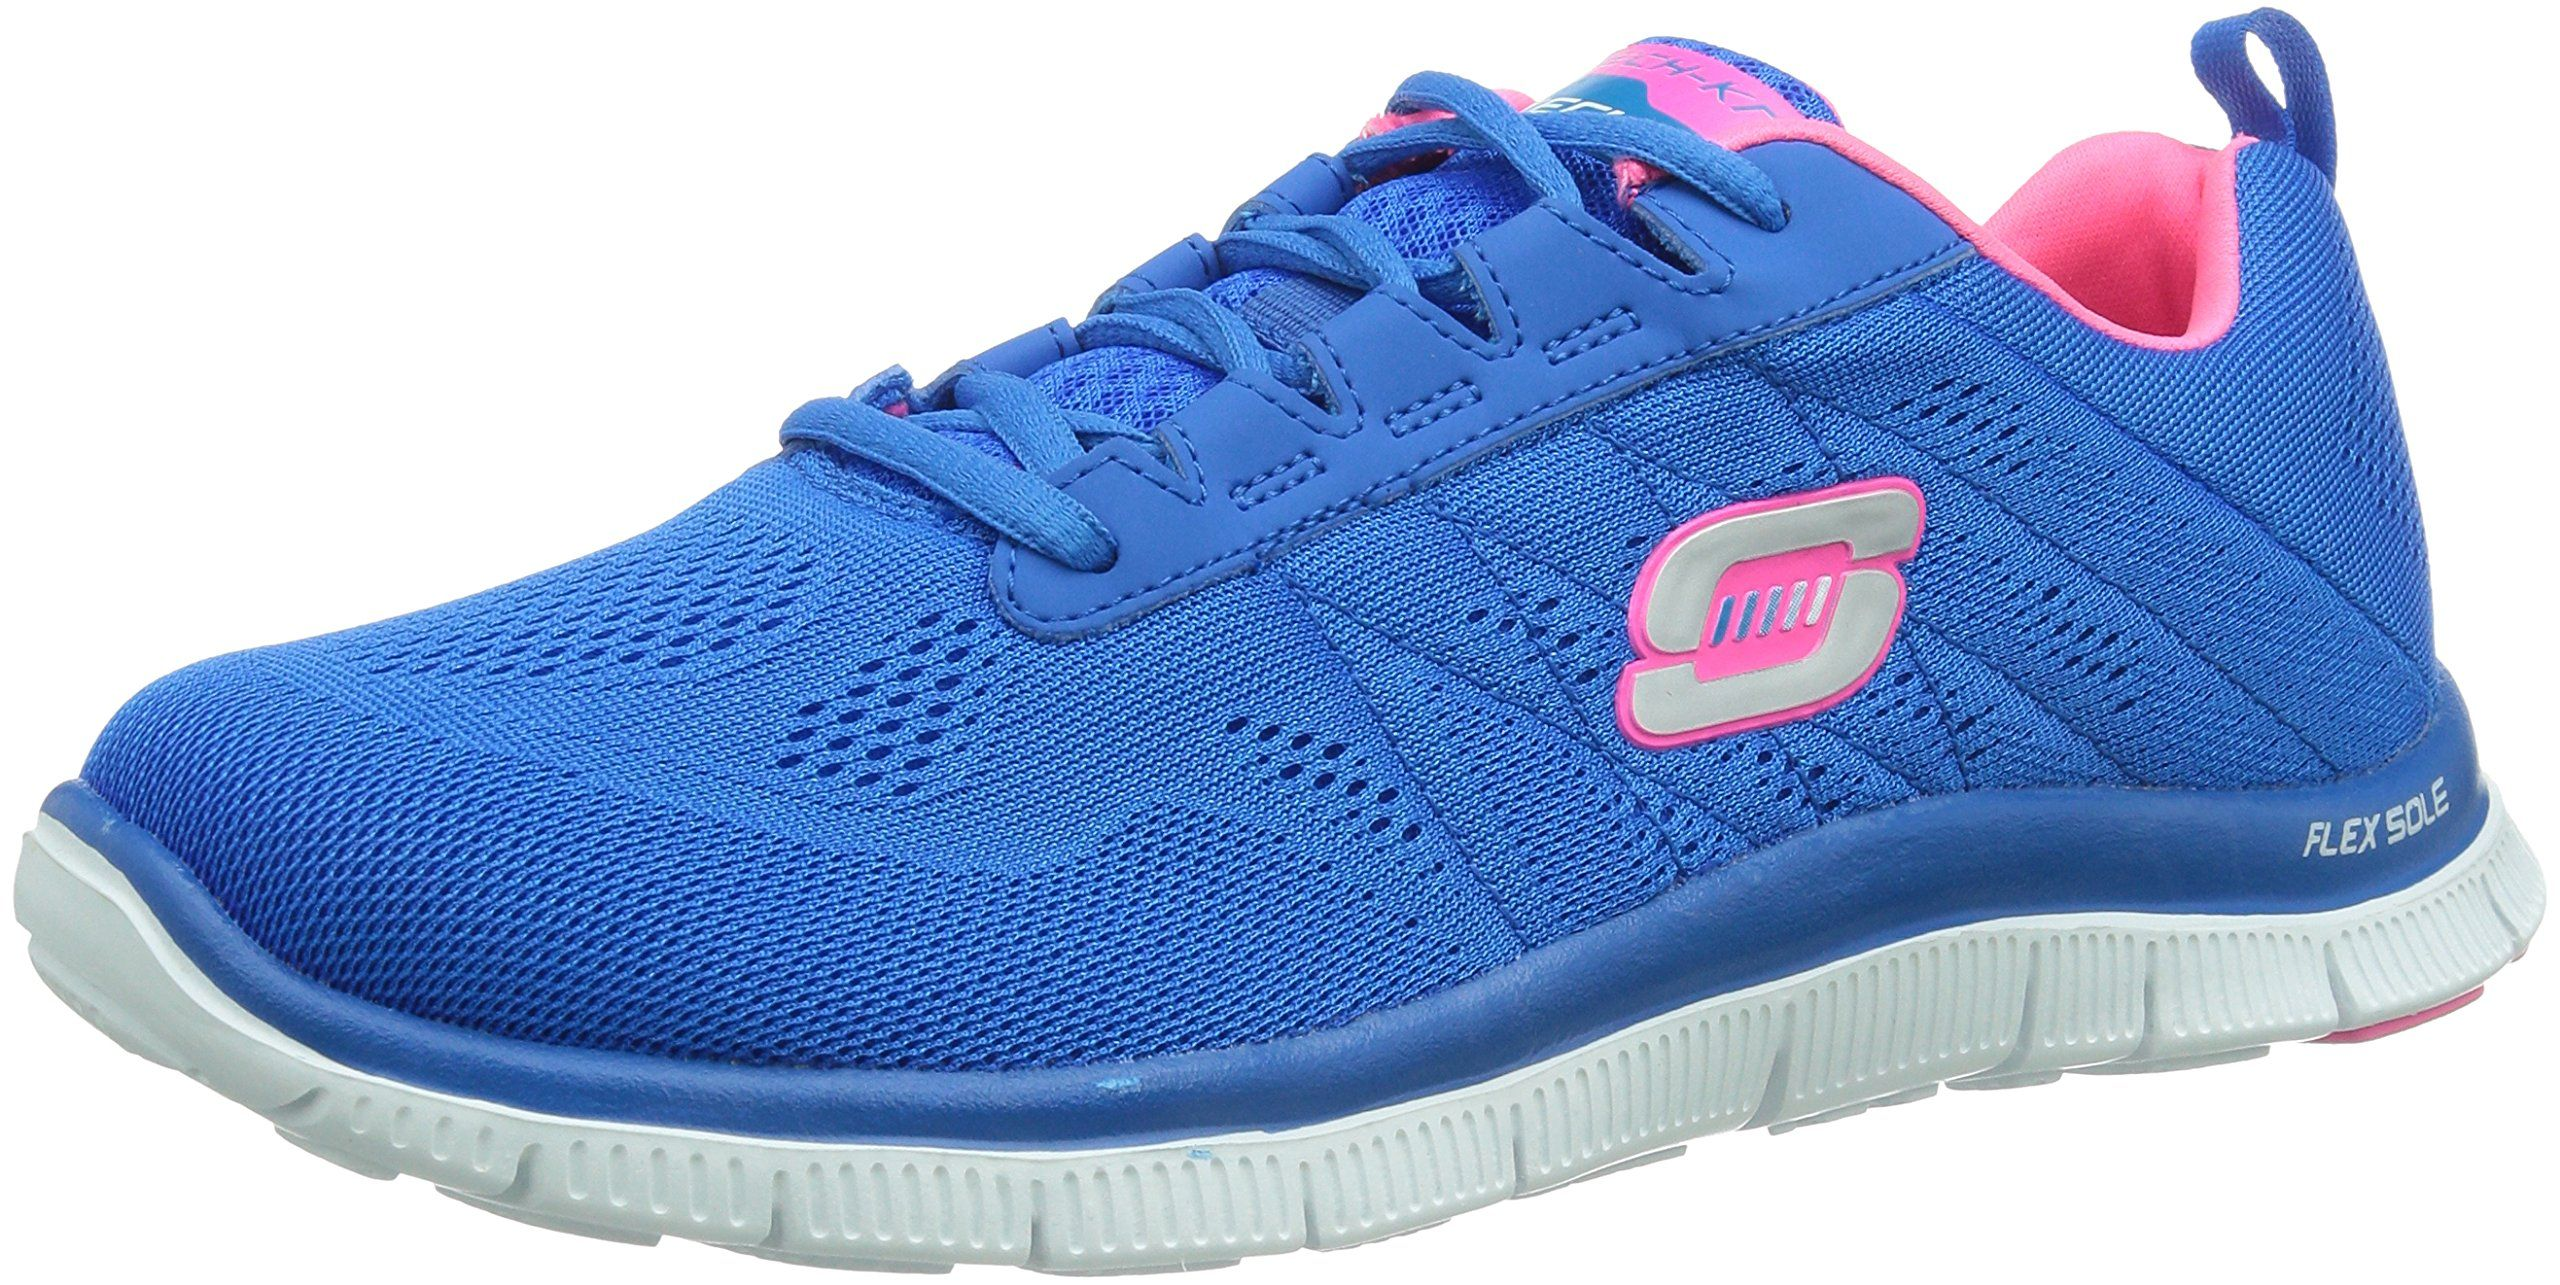 Skechers Women 11729 Flex Appeal Sweet Spot Athletic Shoe